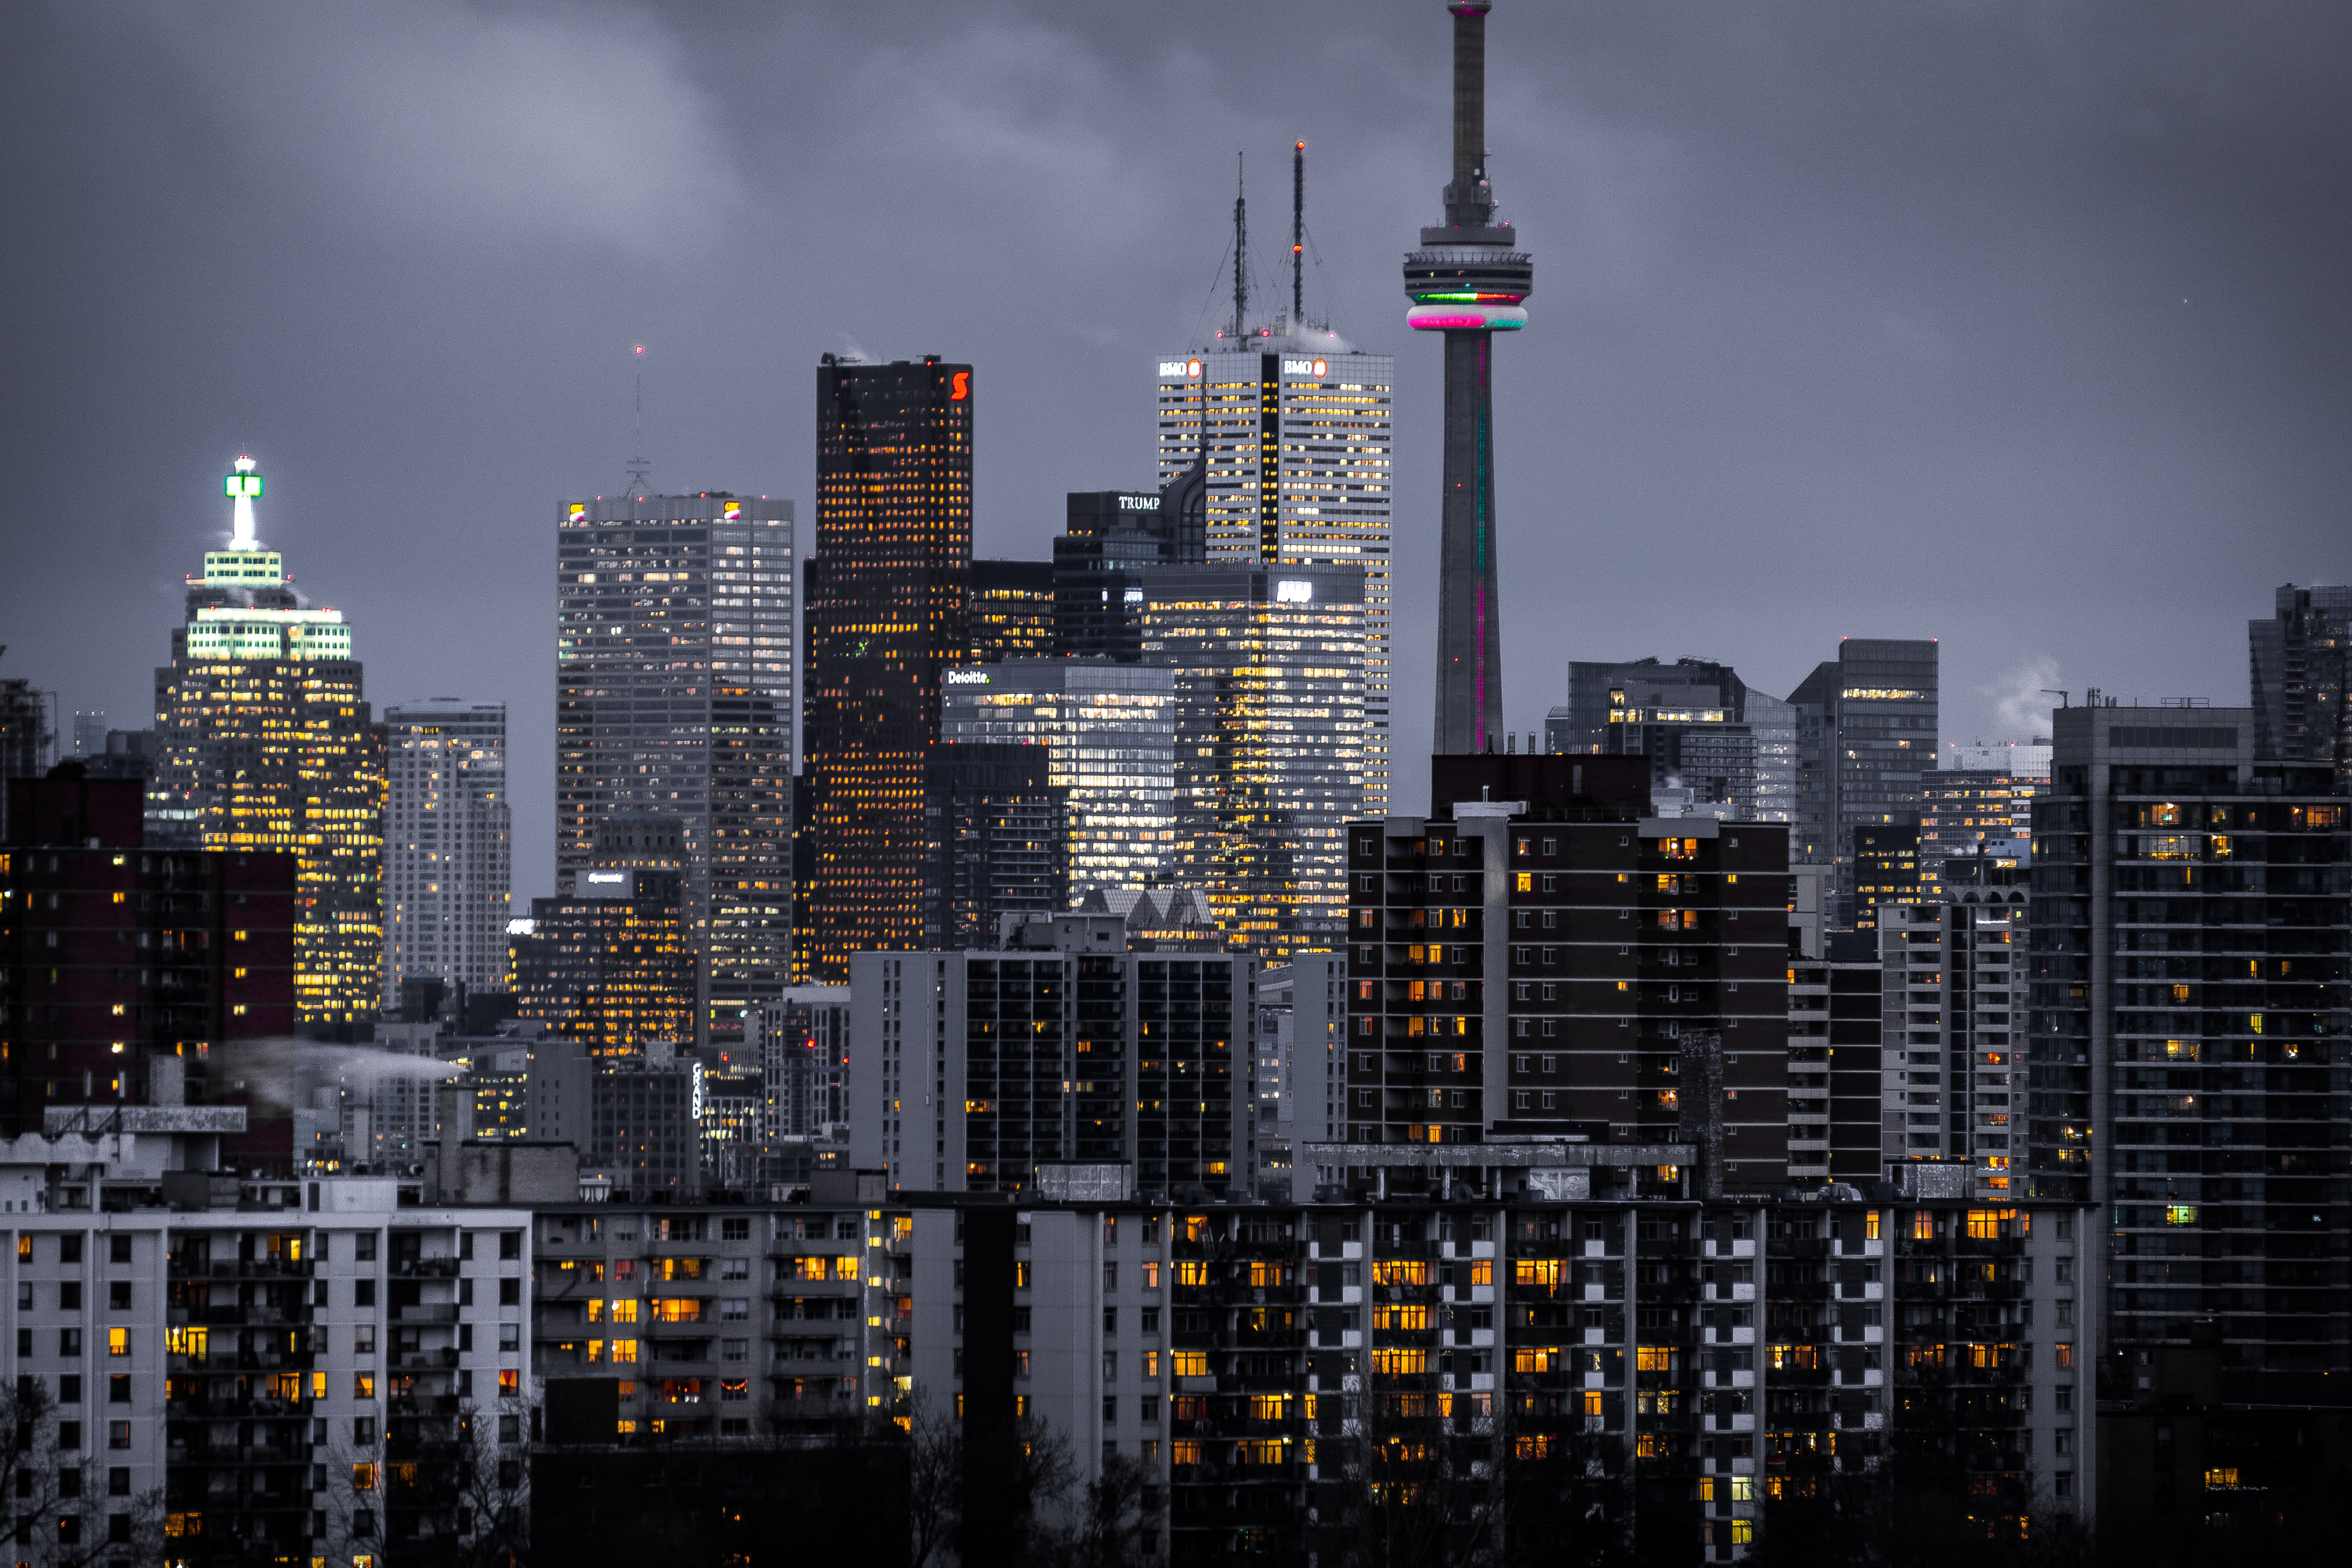 Lights in the windows of high-rises in Toronto on a cloudy evening